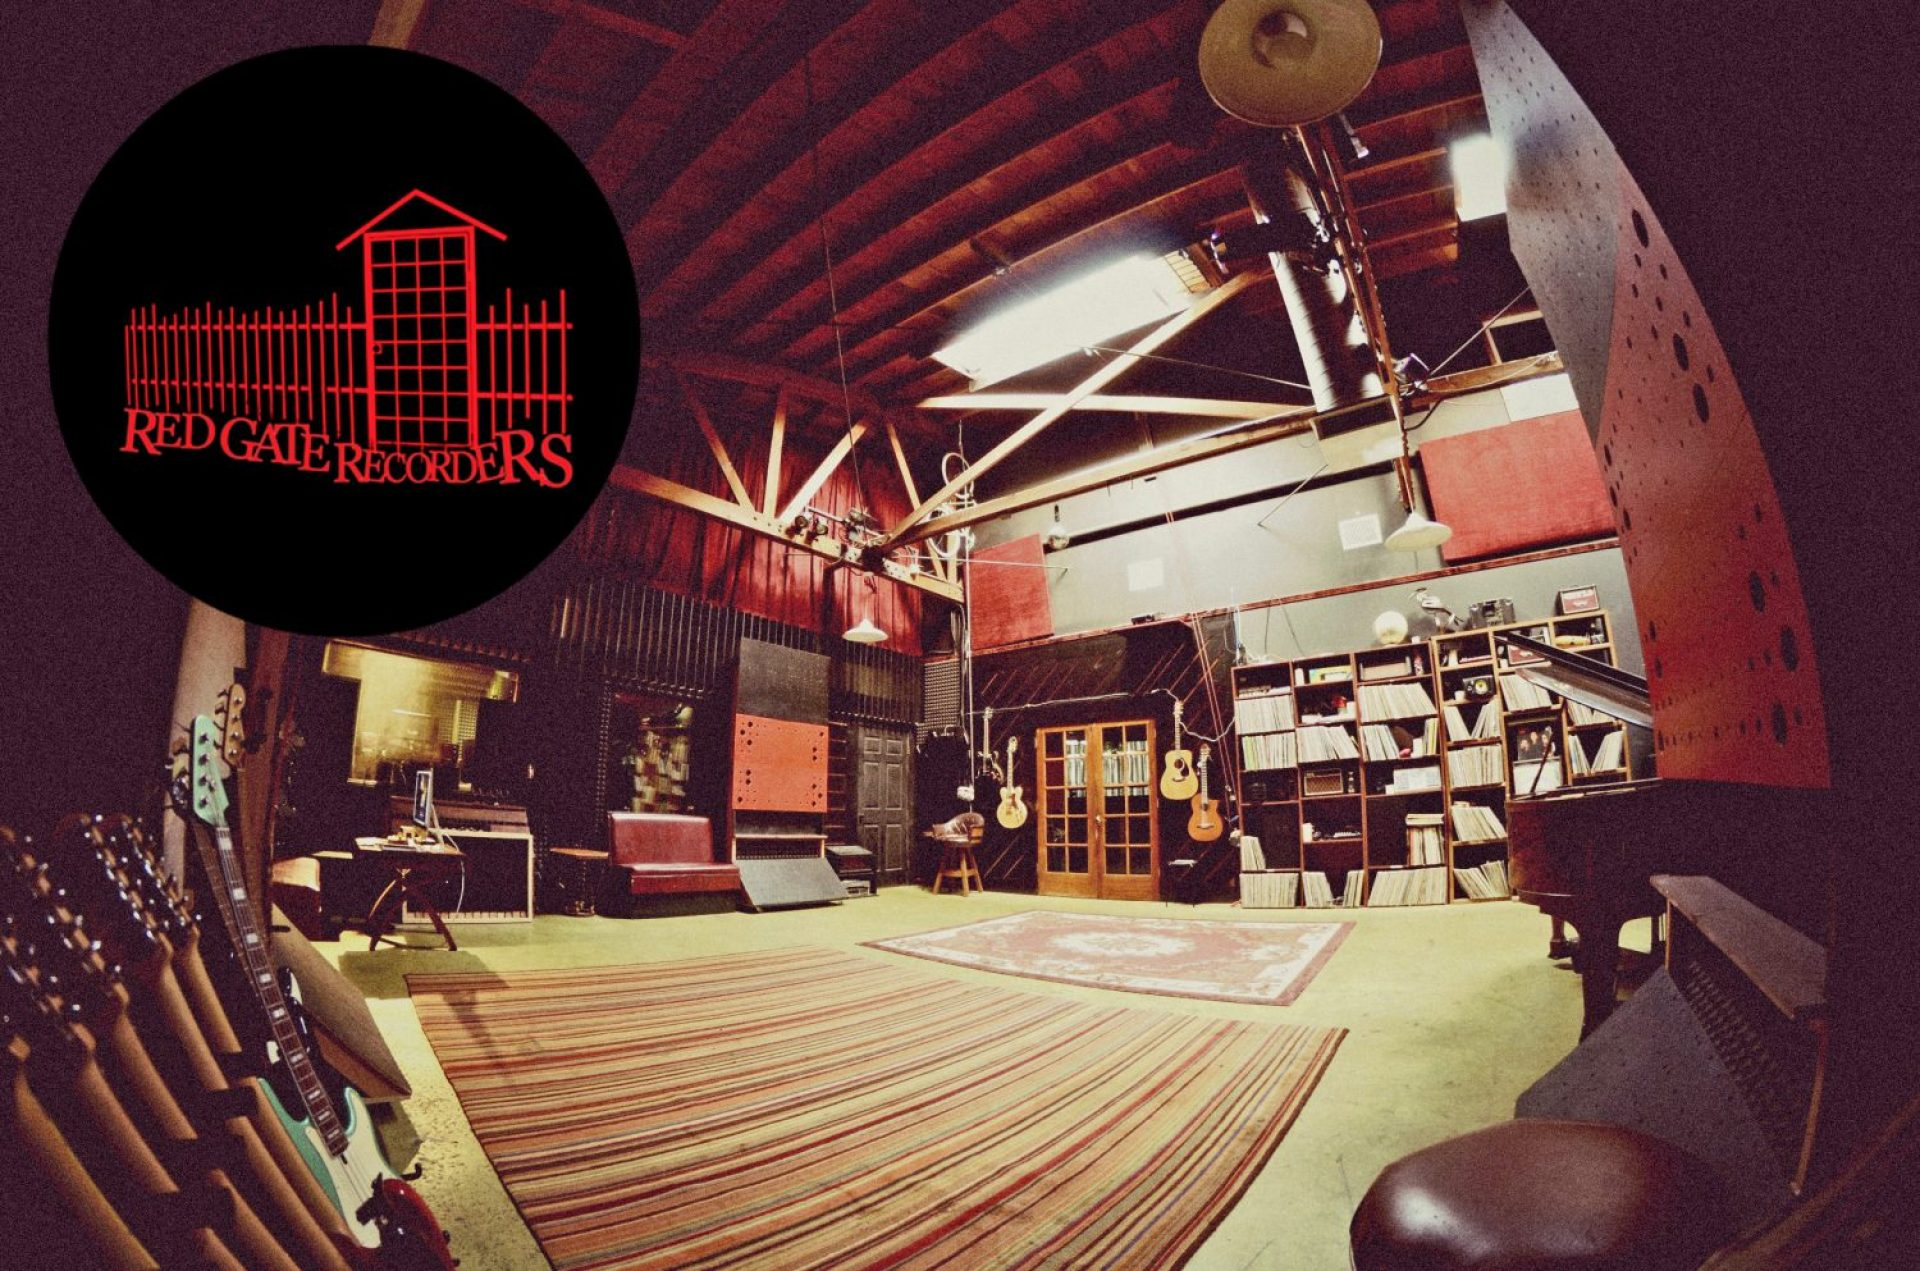 Recording Studio Rehearsal Space And Live Events Venue In Los Angeles California